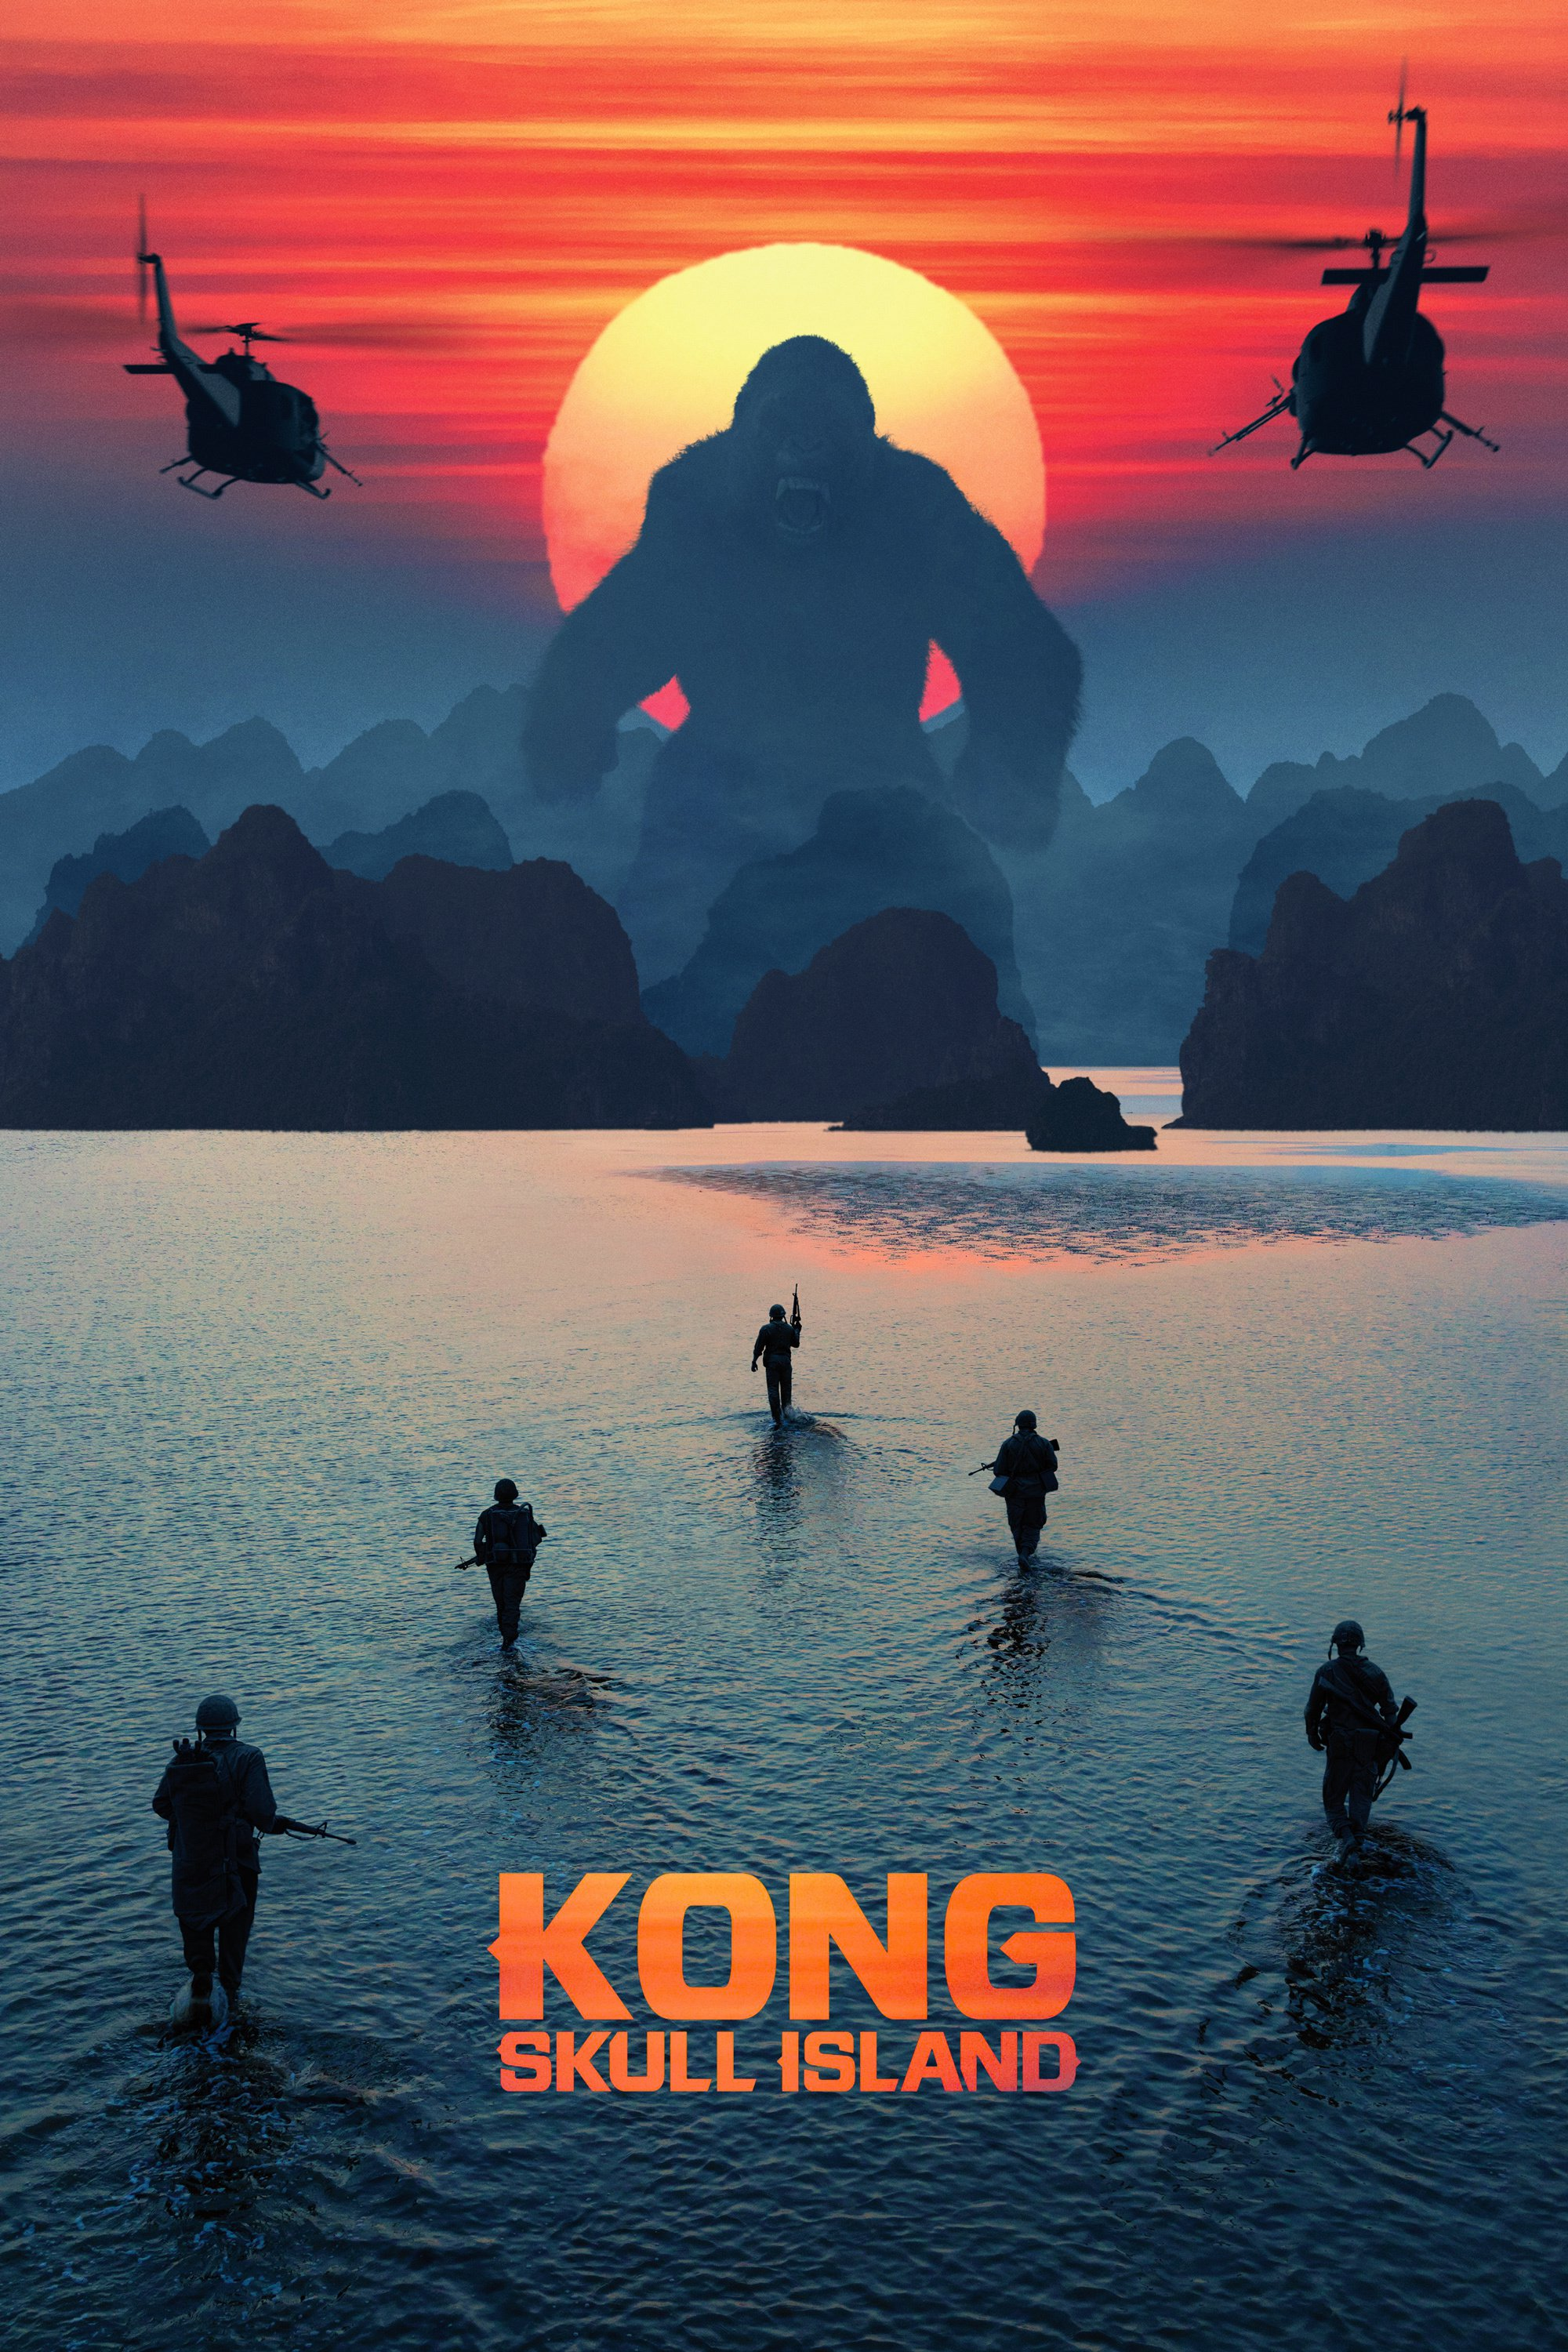 Kong Skull Island: Good movie, crappy script